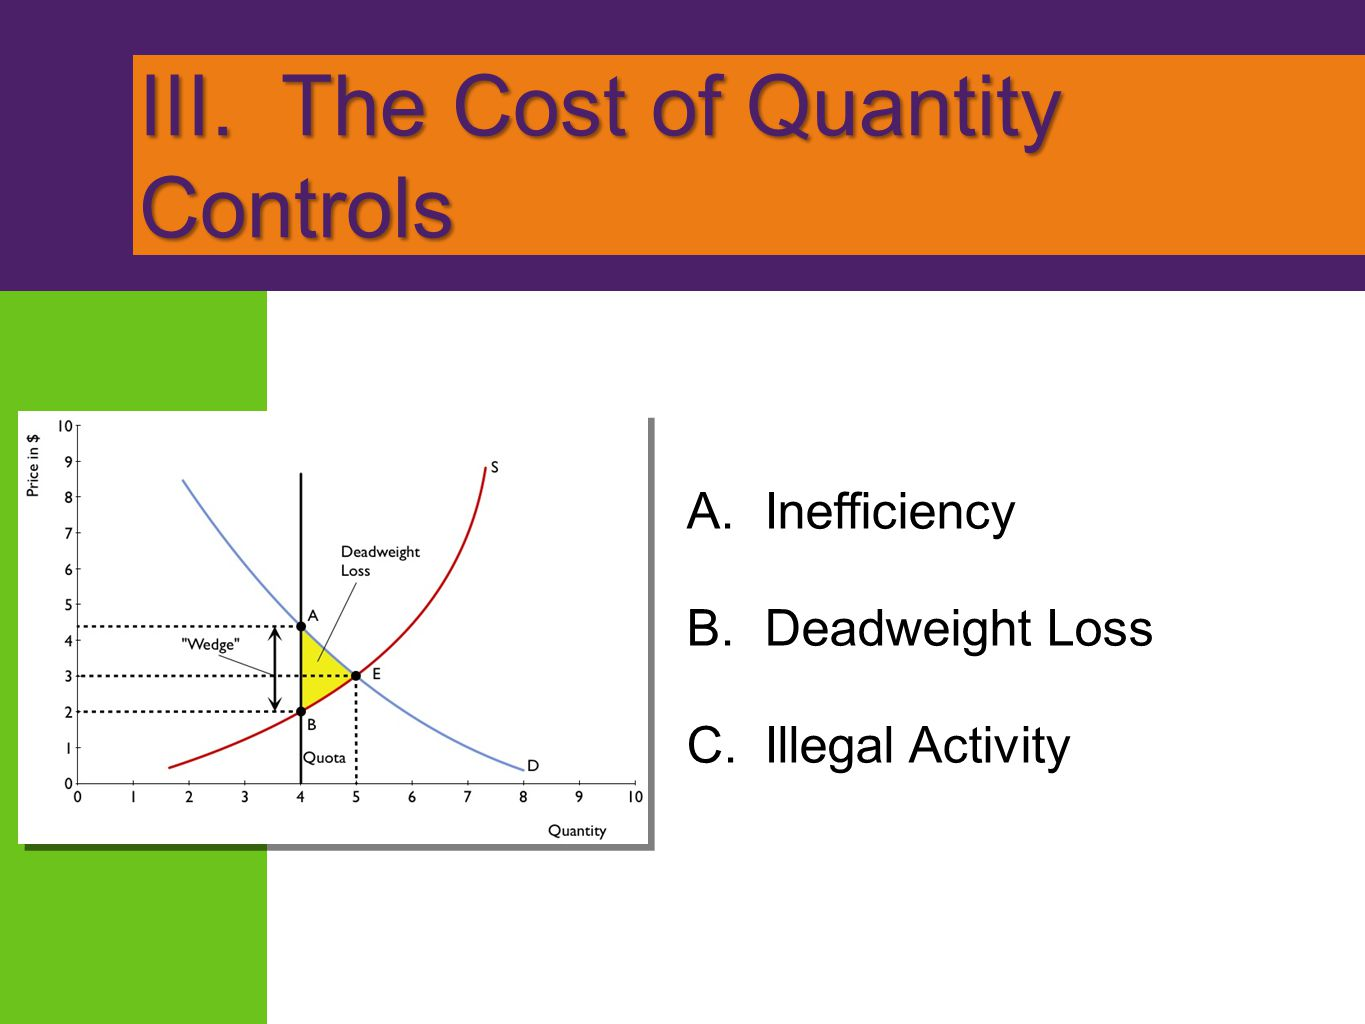 III. The Cost of Quantity Controls